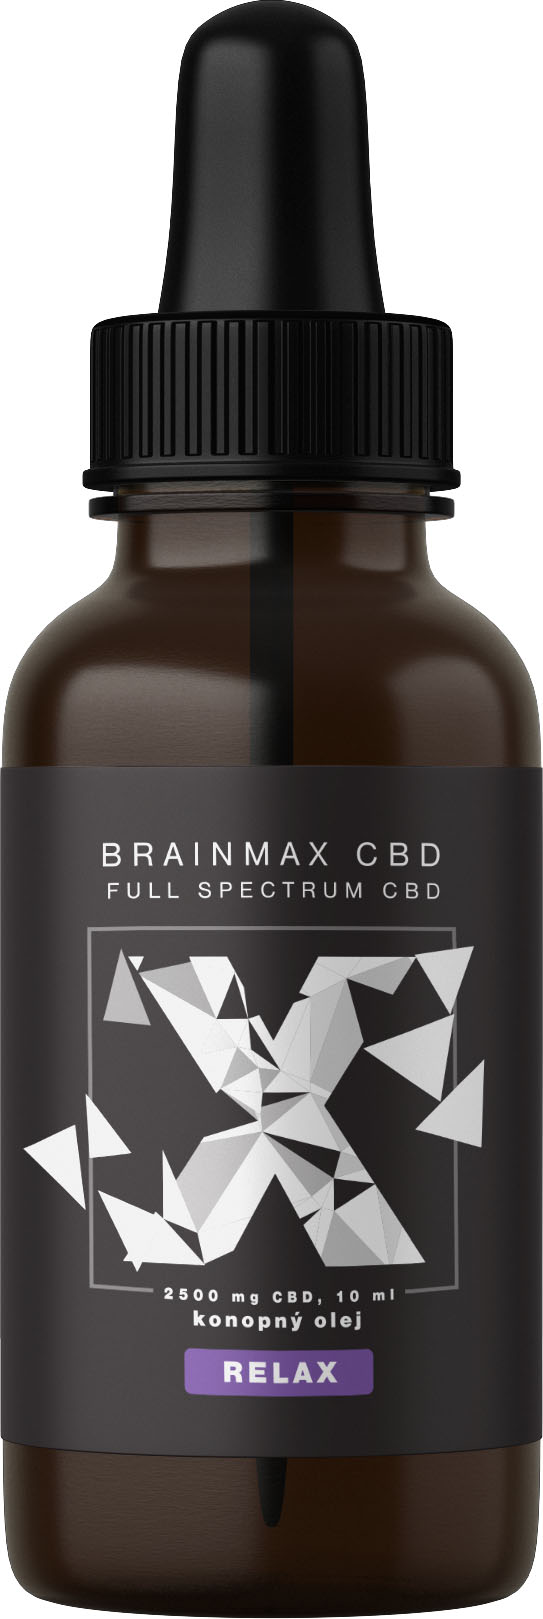 BrainMax CBD RELAX, 25%, 10 ml